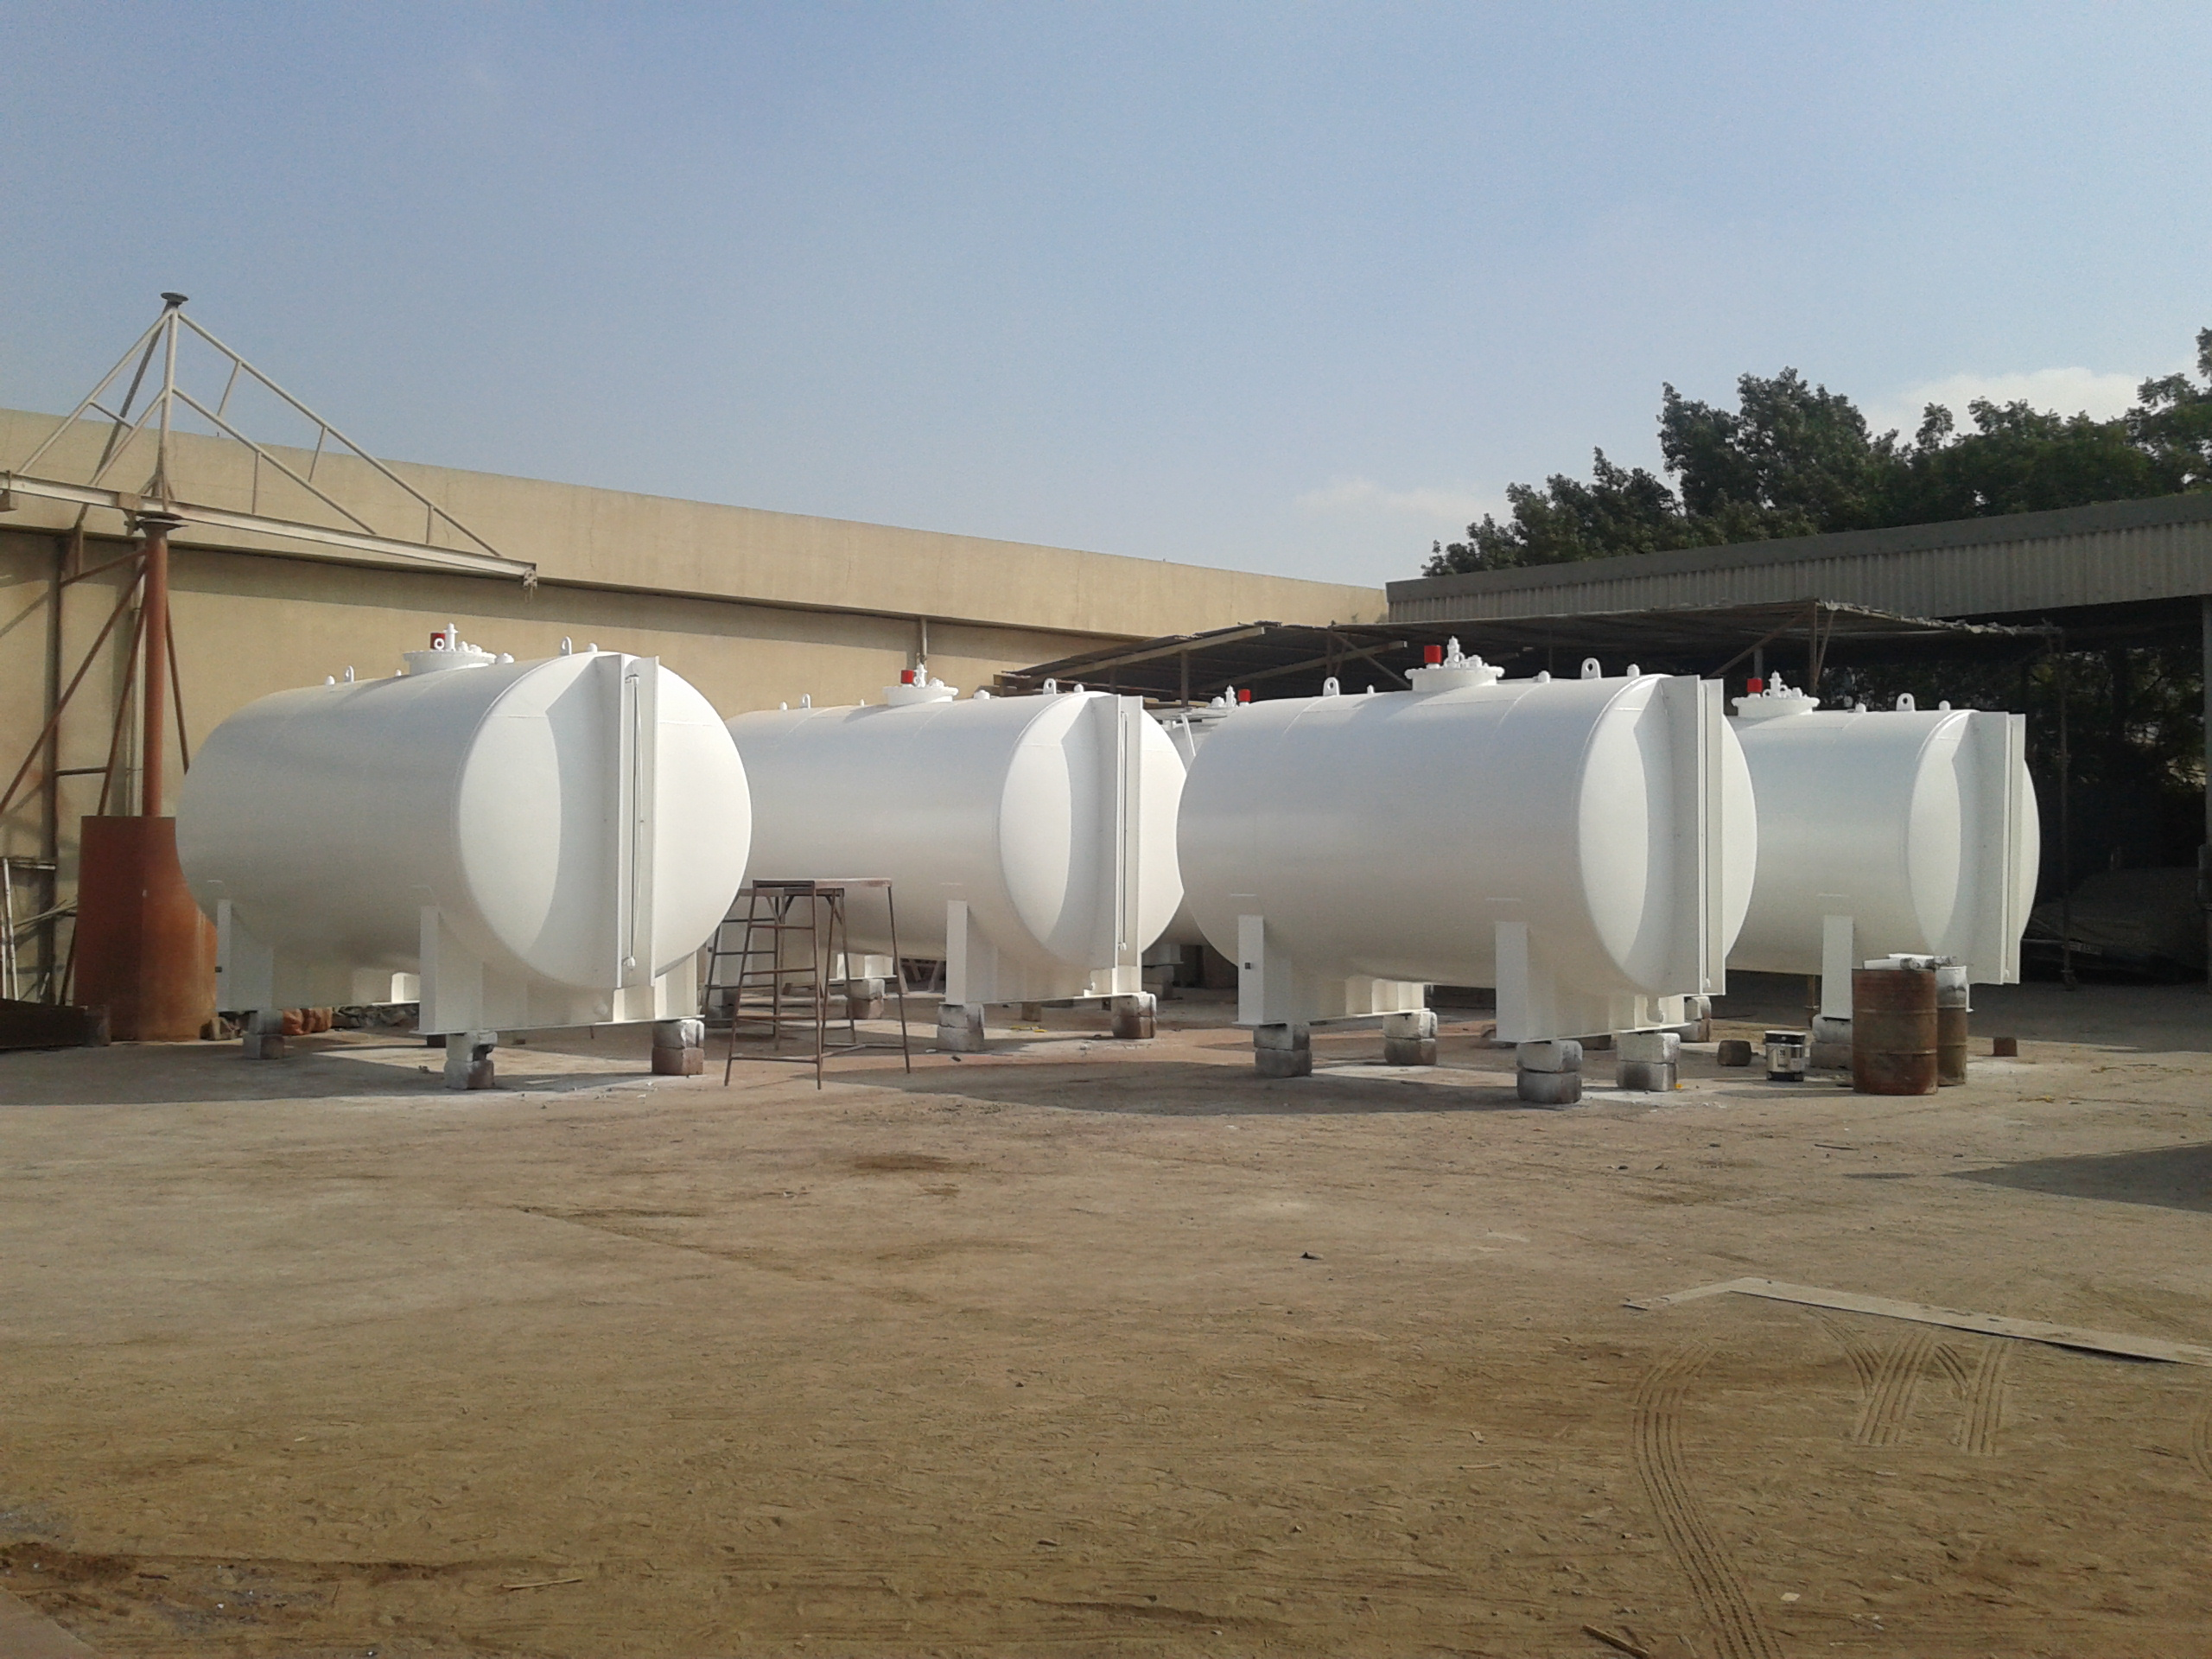 20,000 liters single wall tanks